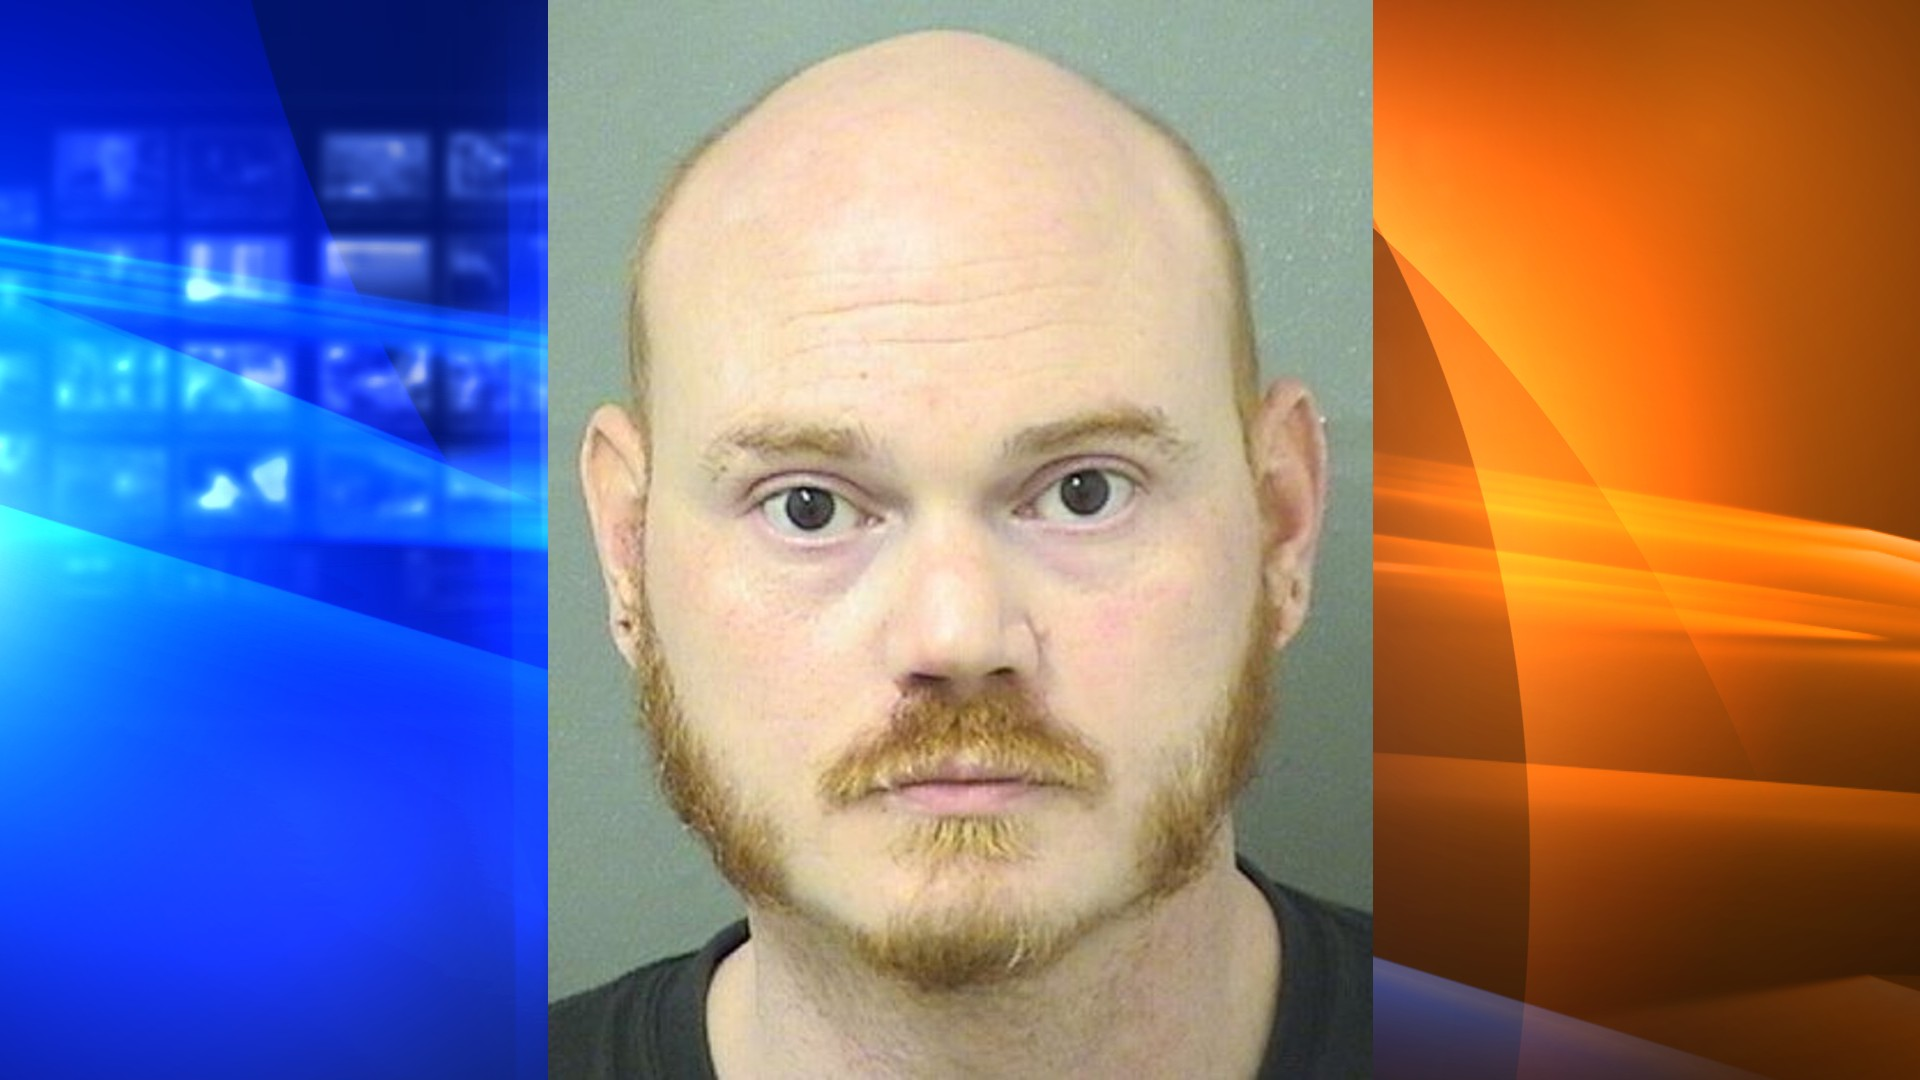 Gregory Haasze is seen in a booking photo released by the Palm Beach County Sheriff's Office.